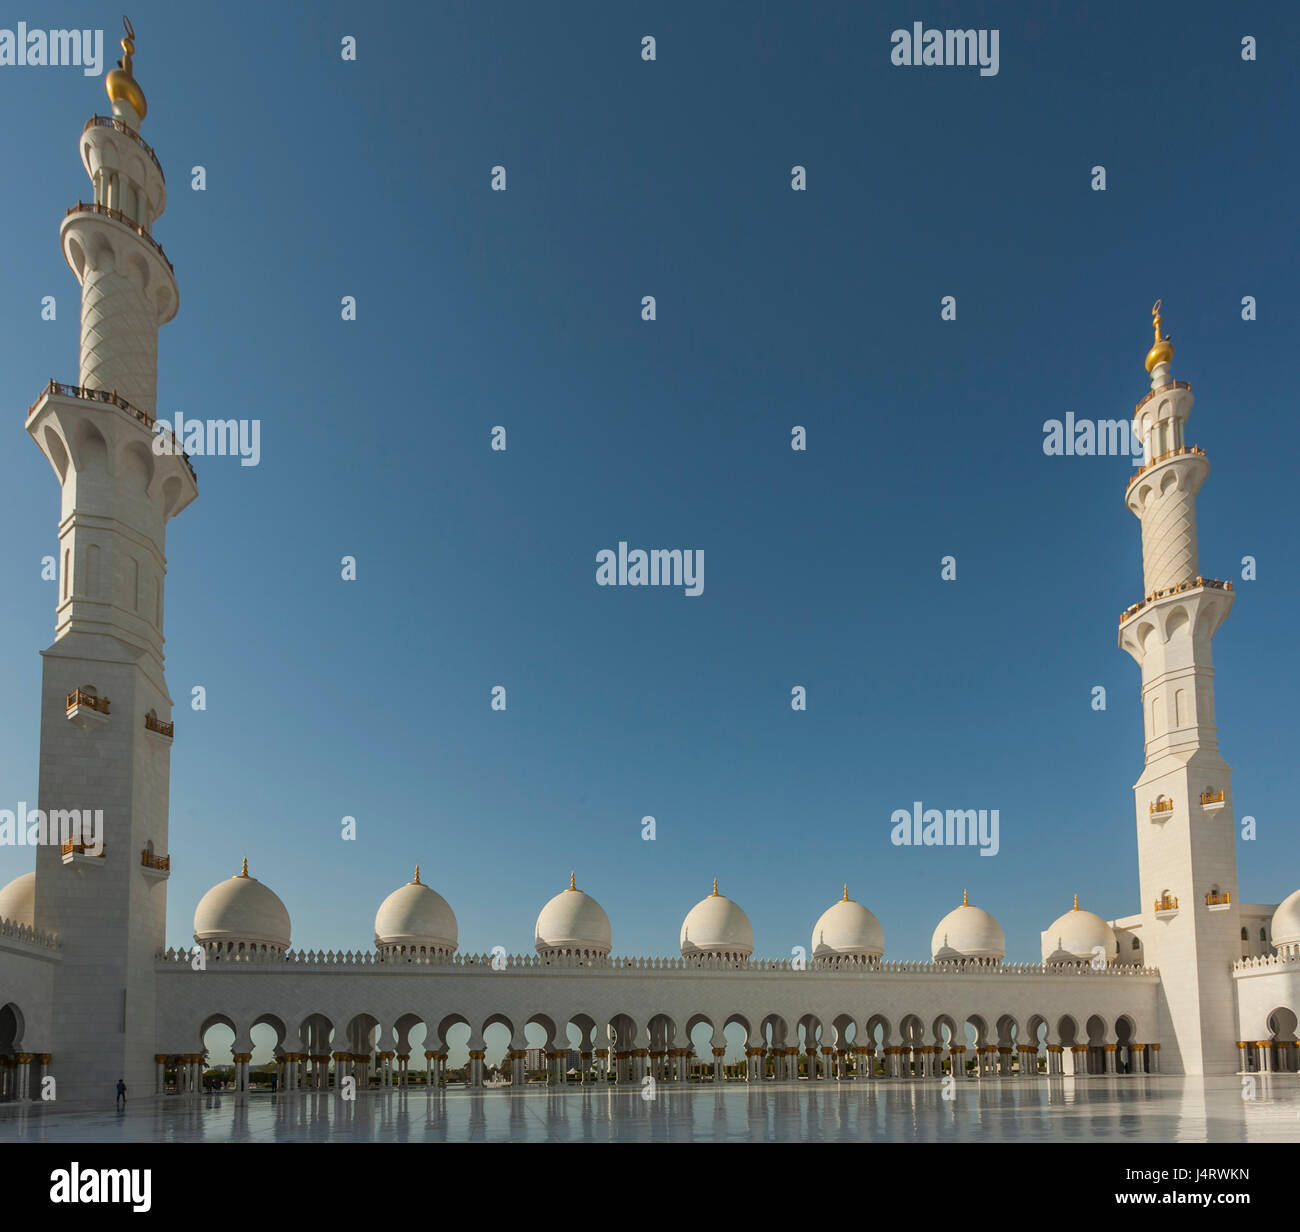 Sheikh Zayed Grand Mosque and mauseleum, Abu dhabi, UAE, Stock Photo